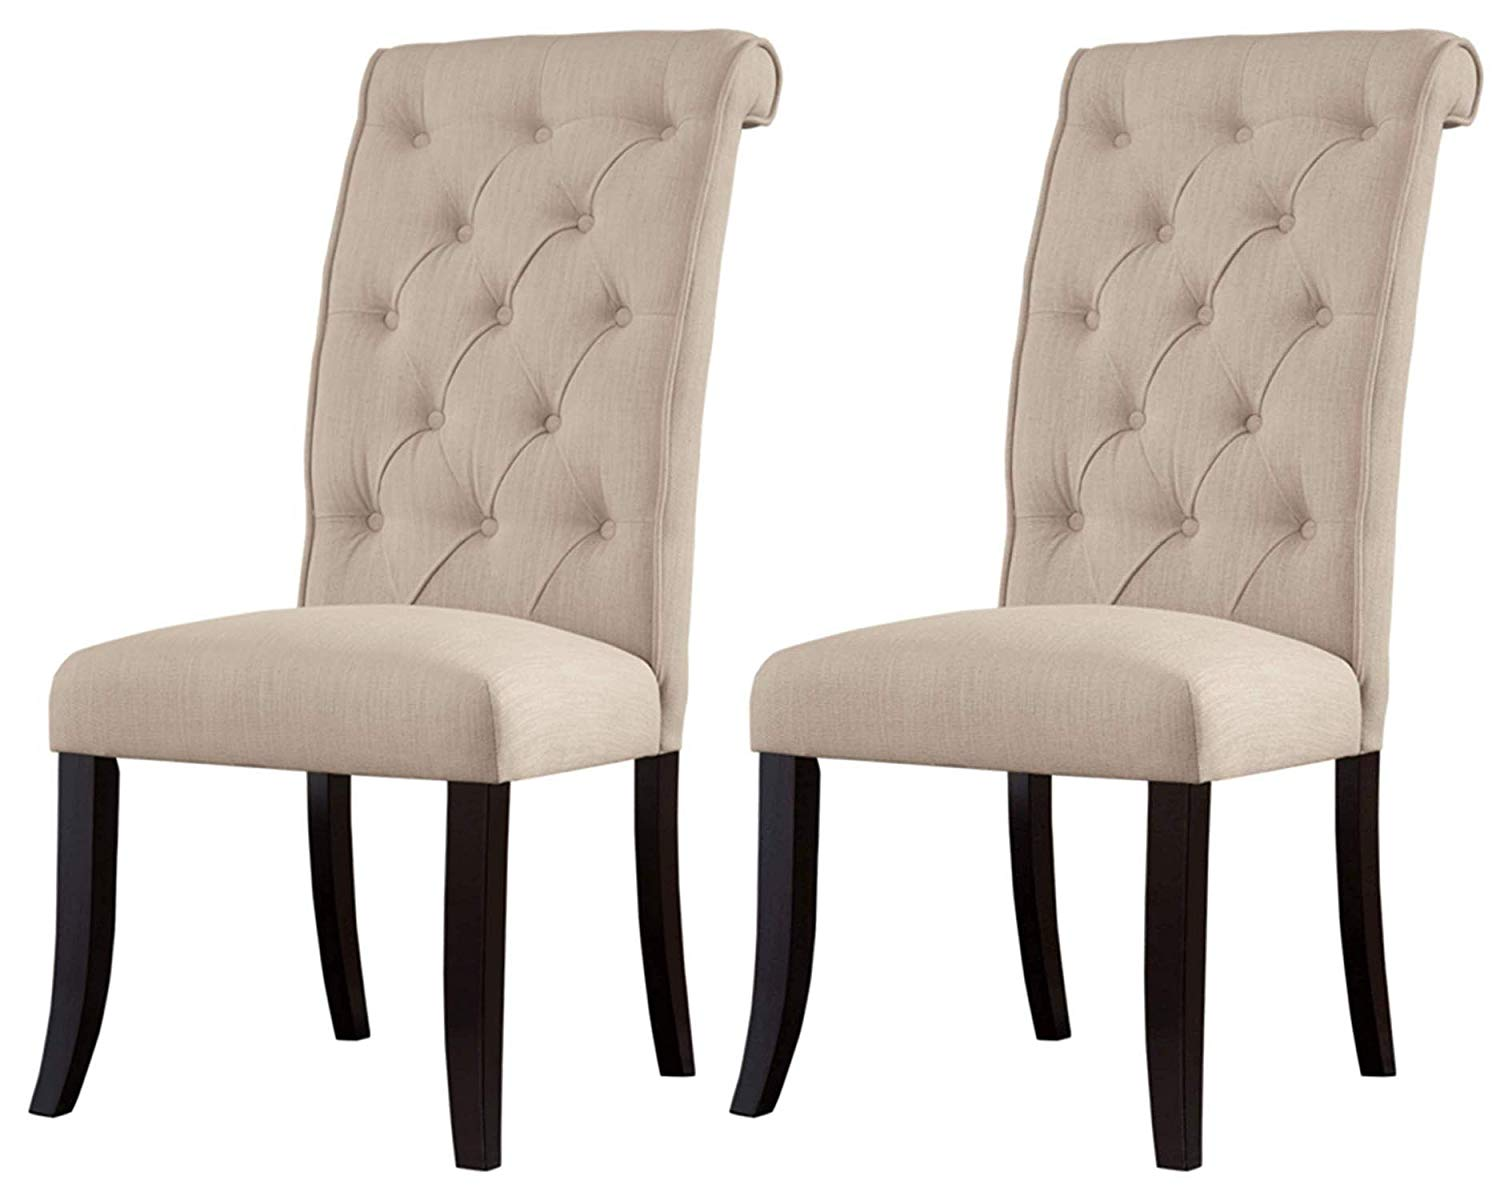 Ashley Furniture Signature Design - Tripton Dining Room Side Chair Set - Upholstered - Vintage Casual - Set of 2 – Linen